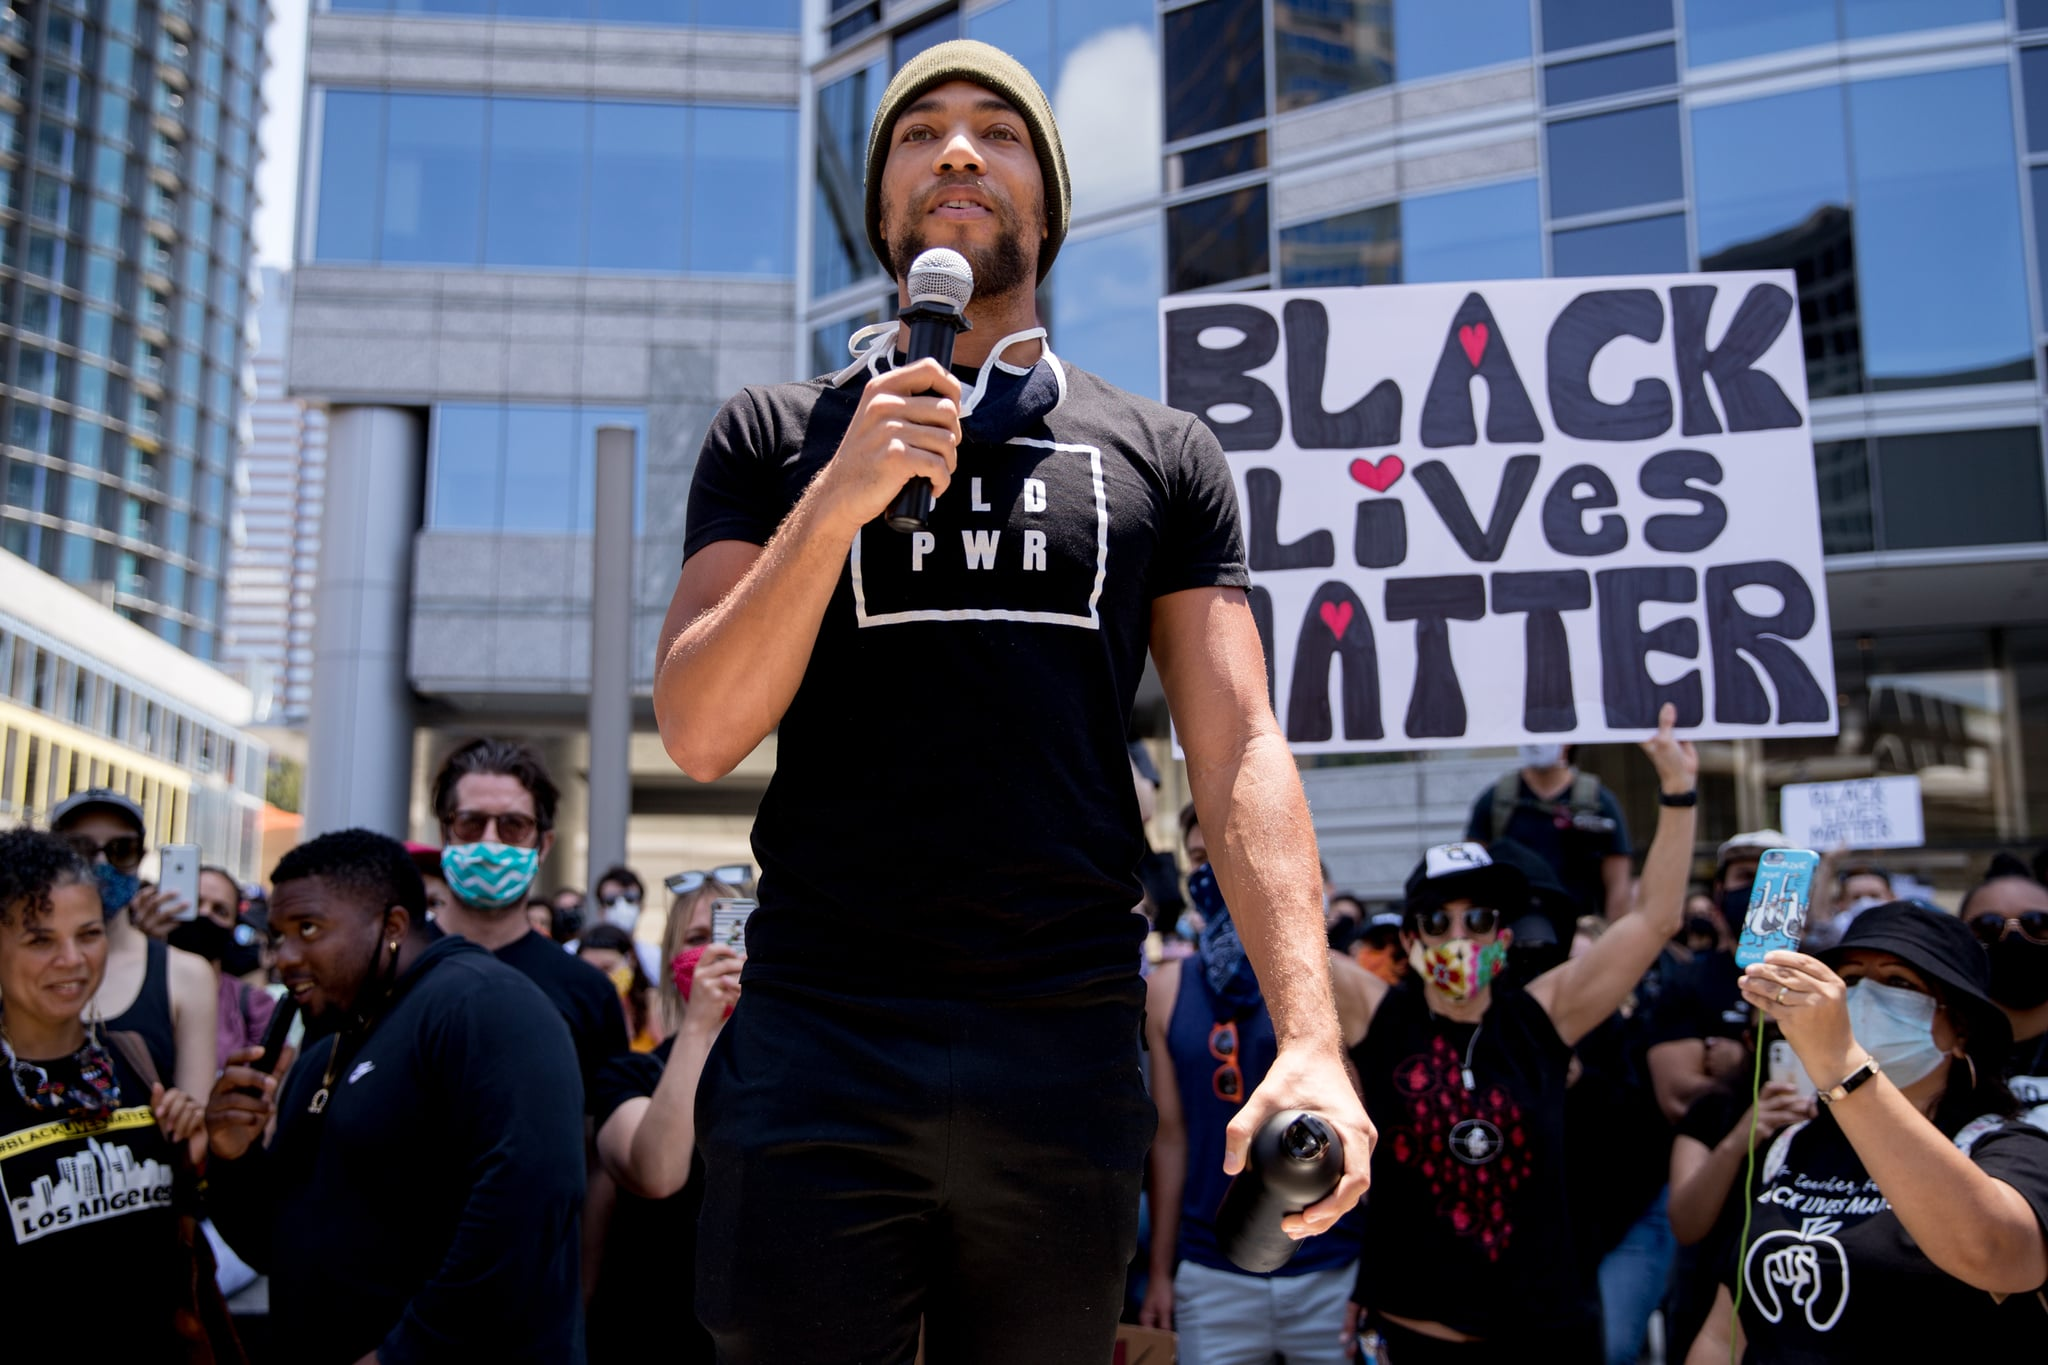 BEVERLY HILLS, CALIFORNIA - JUNE 06: Kendrick Sampson participates in the Hollywood talent agencies march to support Black Lives Matter protests on June 06, 2020 in Beverly Hills, California. (Photo by Rich Fury/Getty Images)